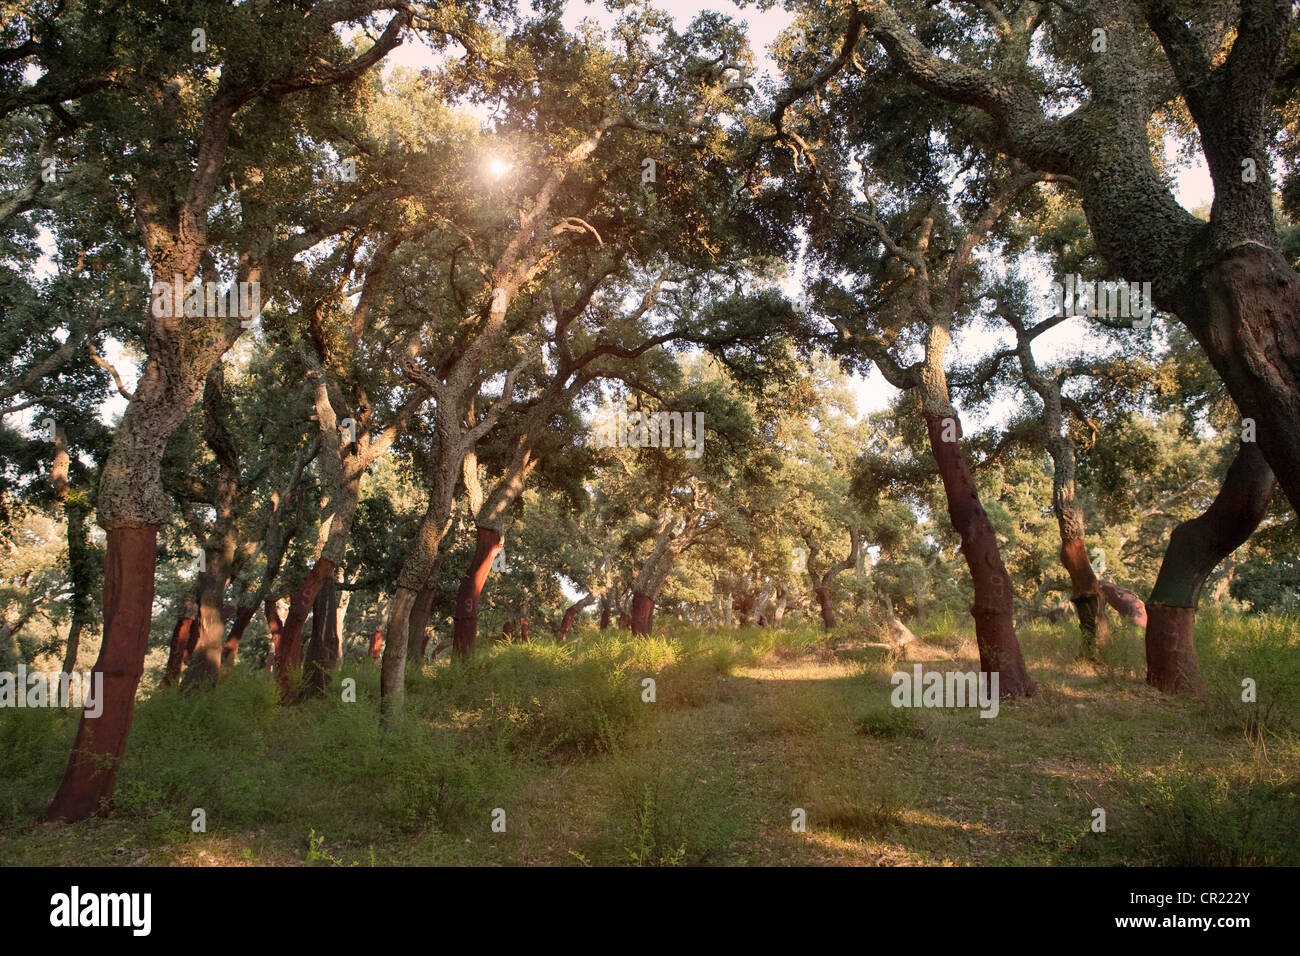 Stripped cork trees in rural forest Stock Photo